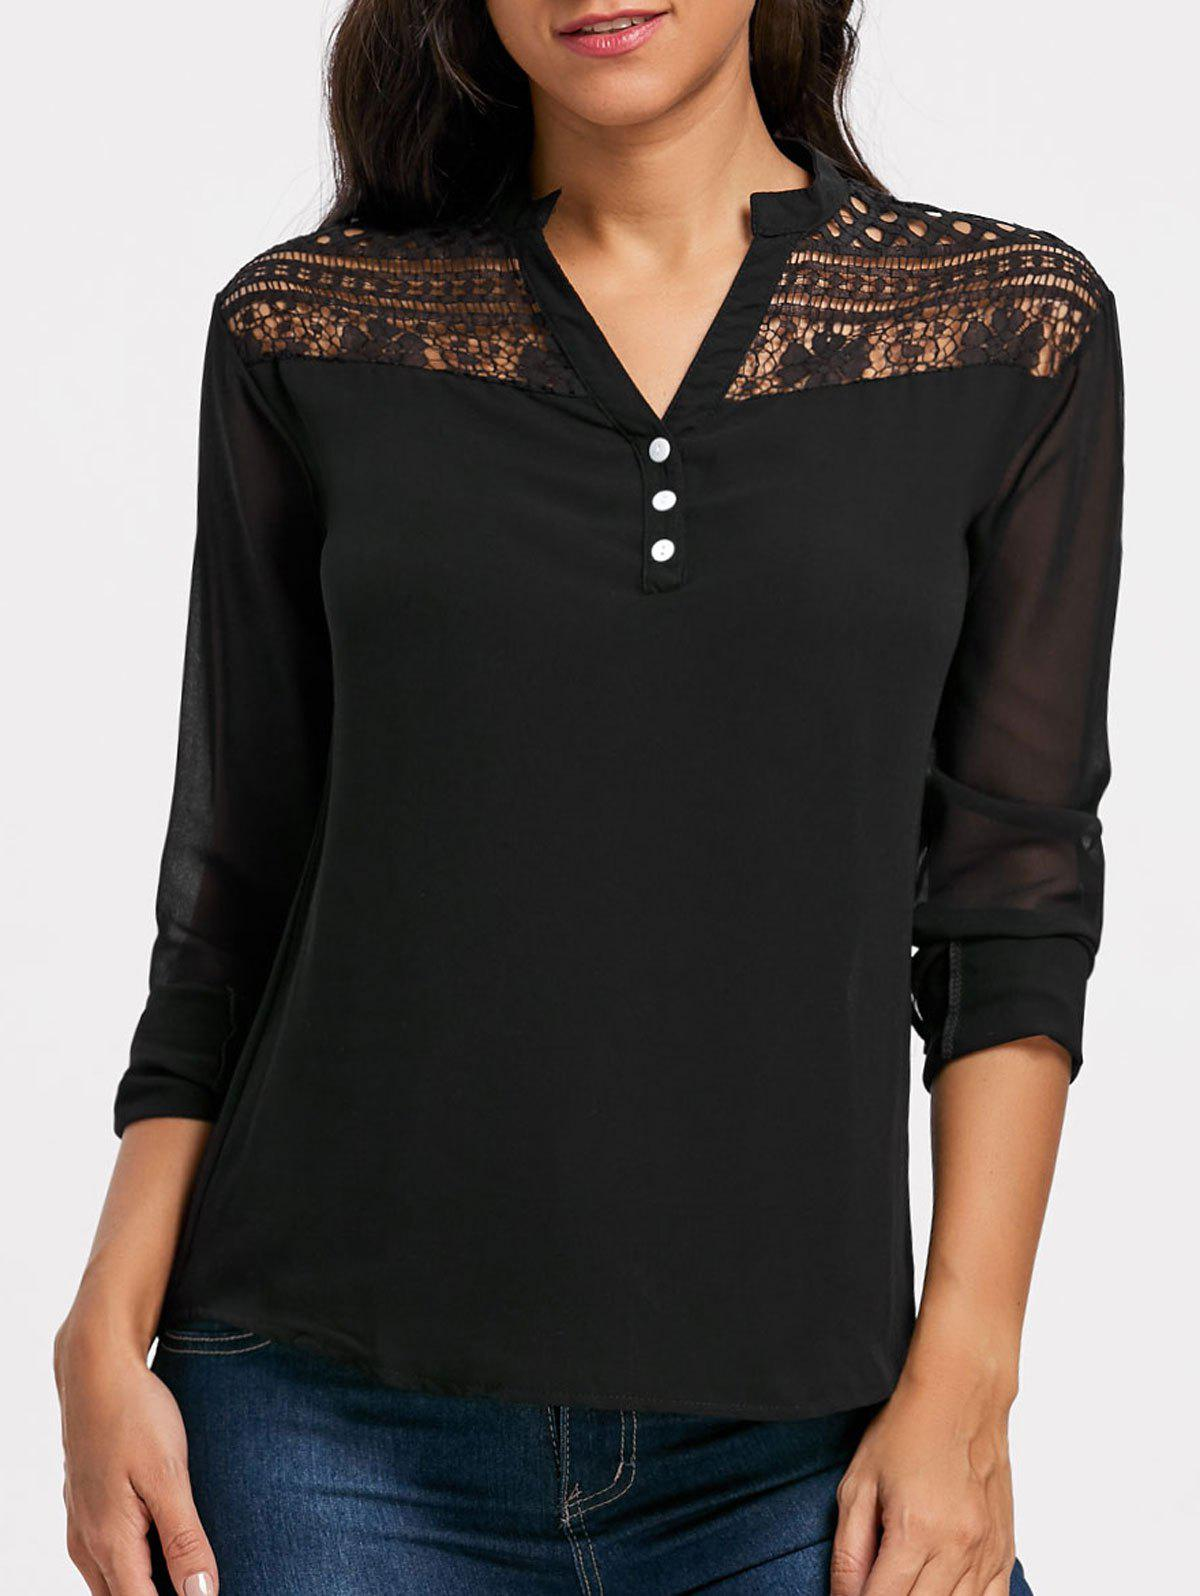 Lace Insert Sheer Chiffon Henley Blouse - BLACK L